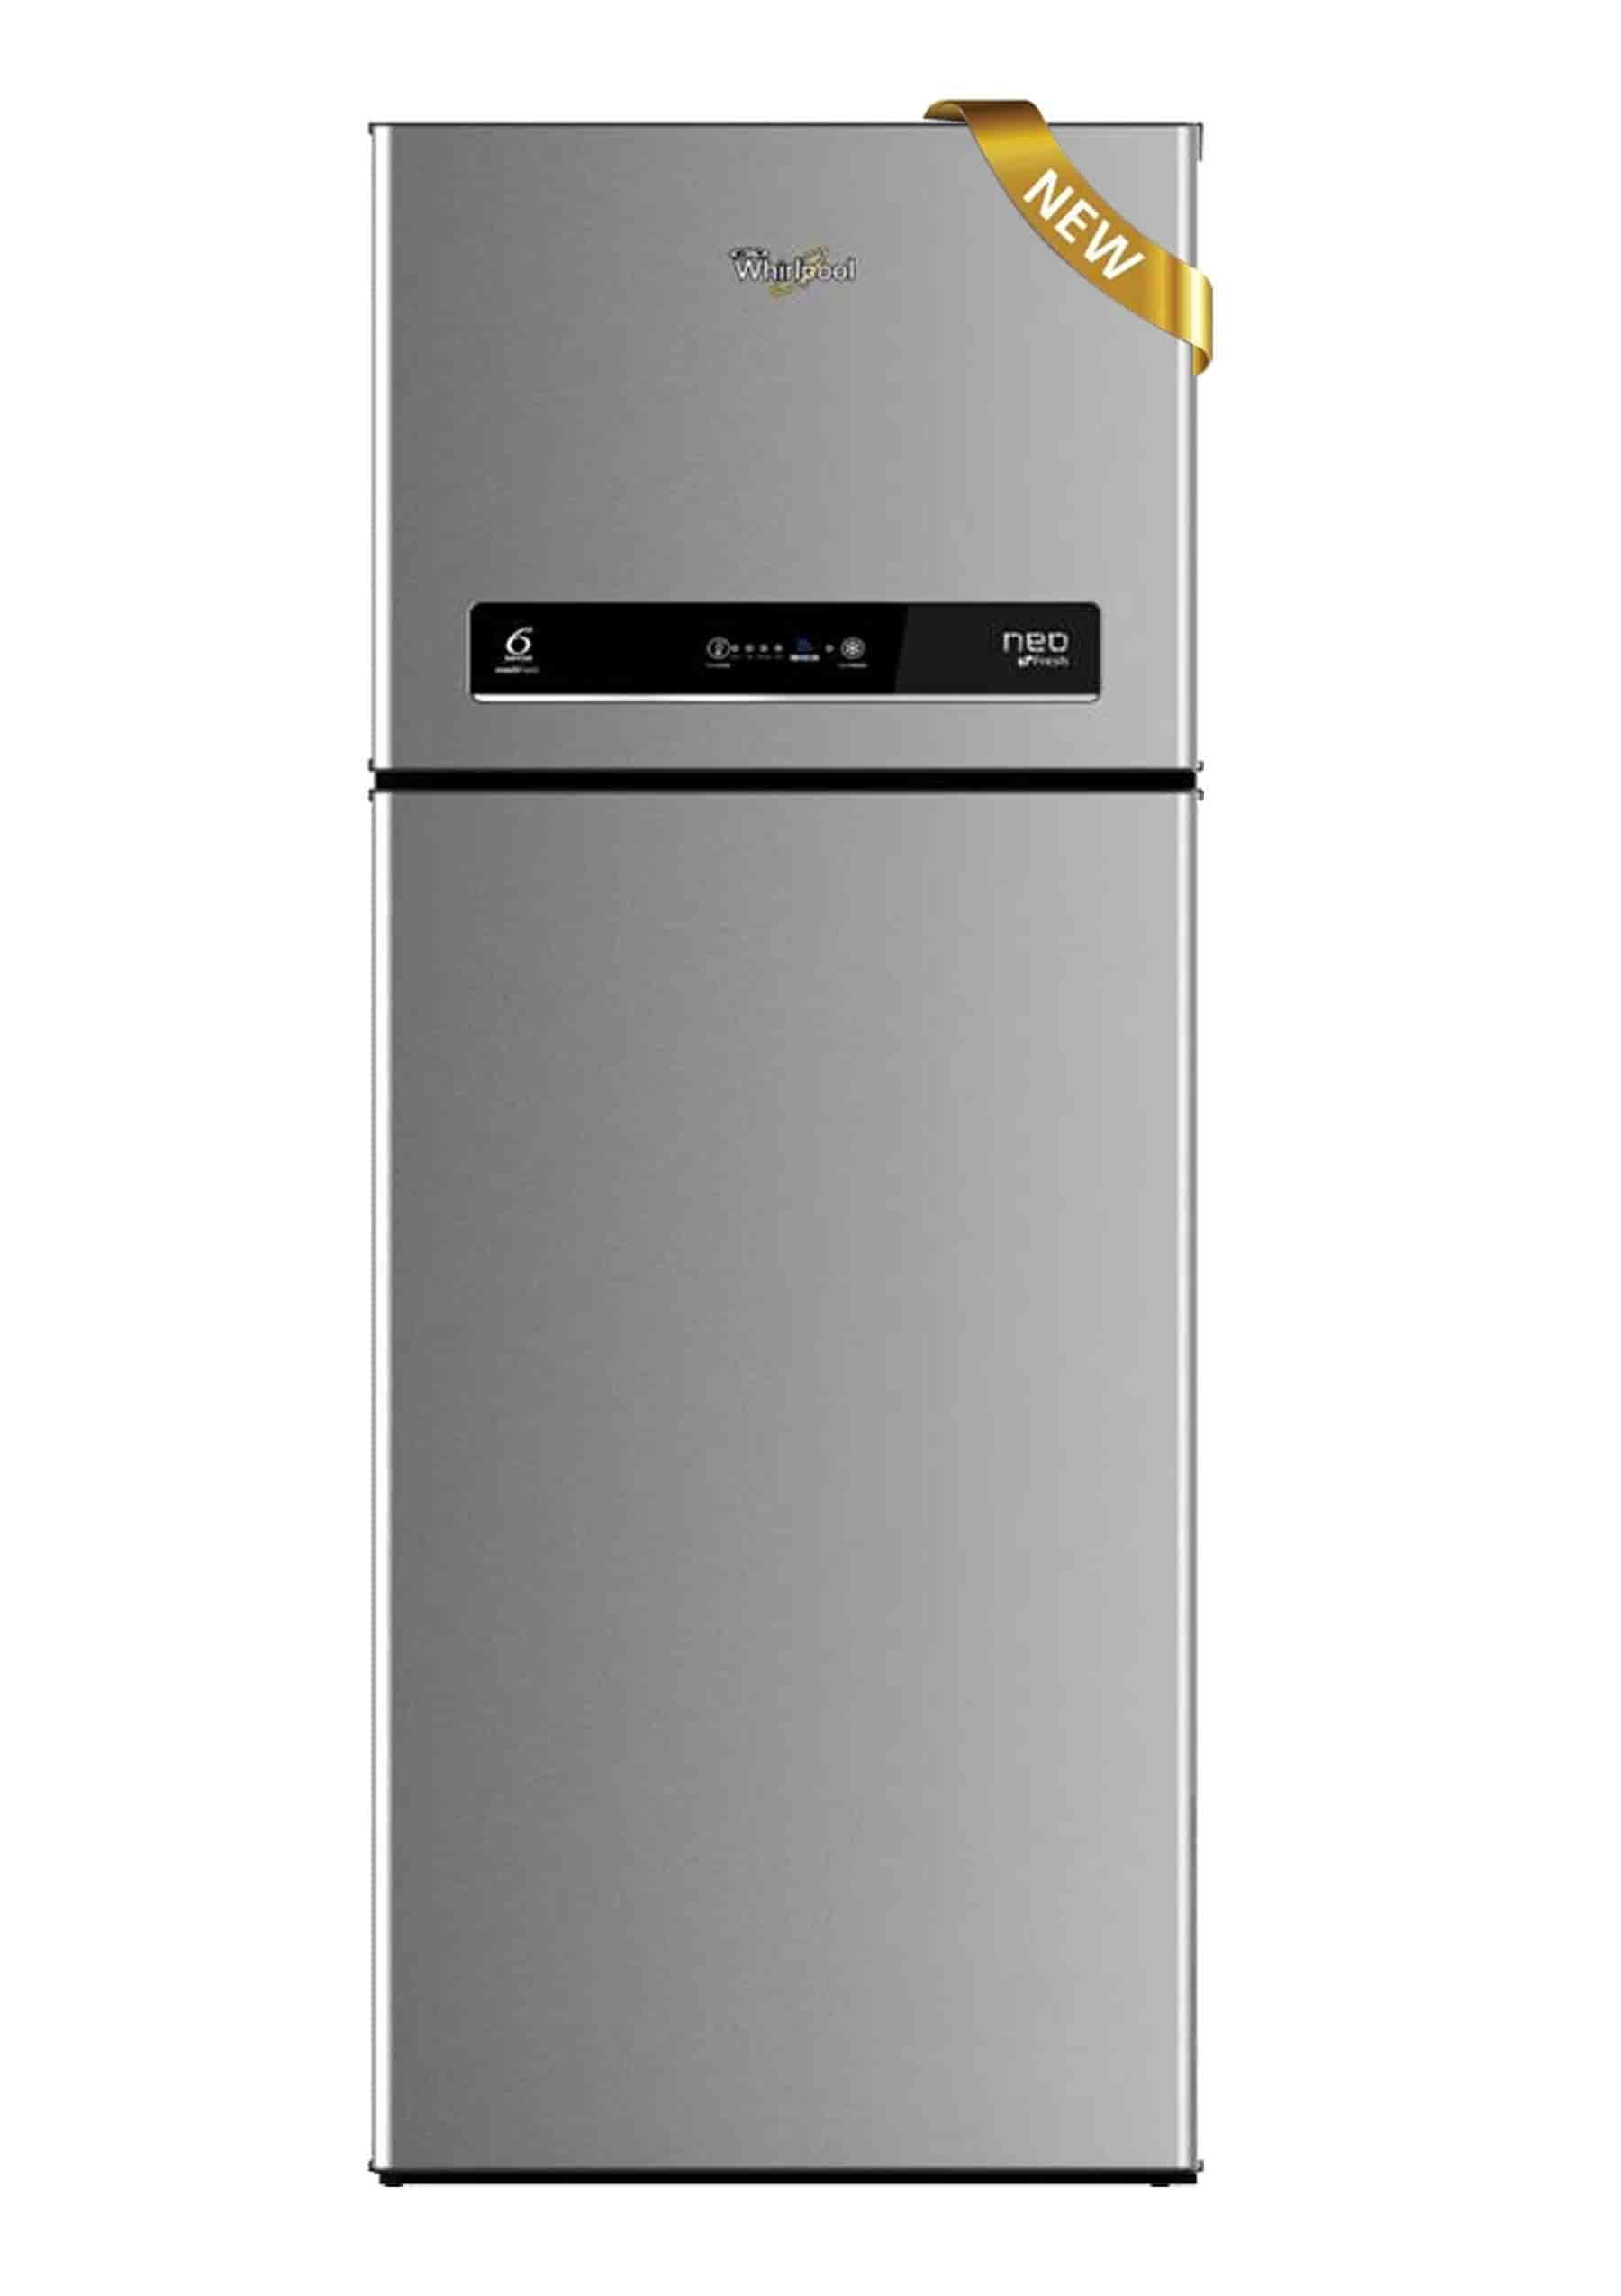 rt door double in price godrej india p l refrigerator eon